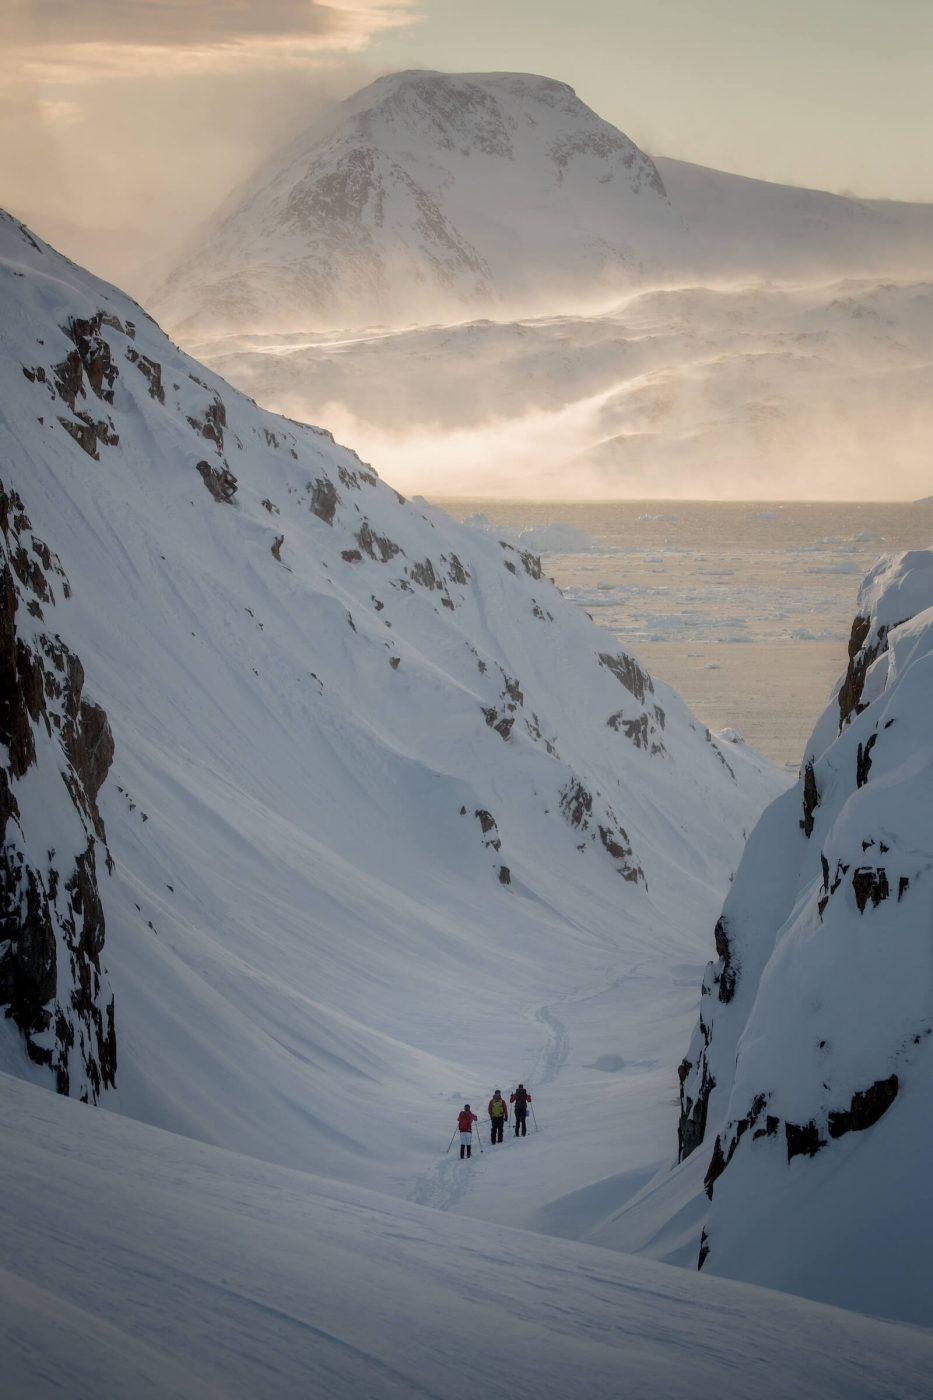 Skiers in a narrow valley near Sermilik Ice Fjord in East Greenland